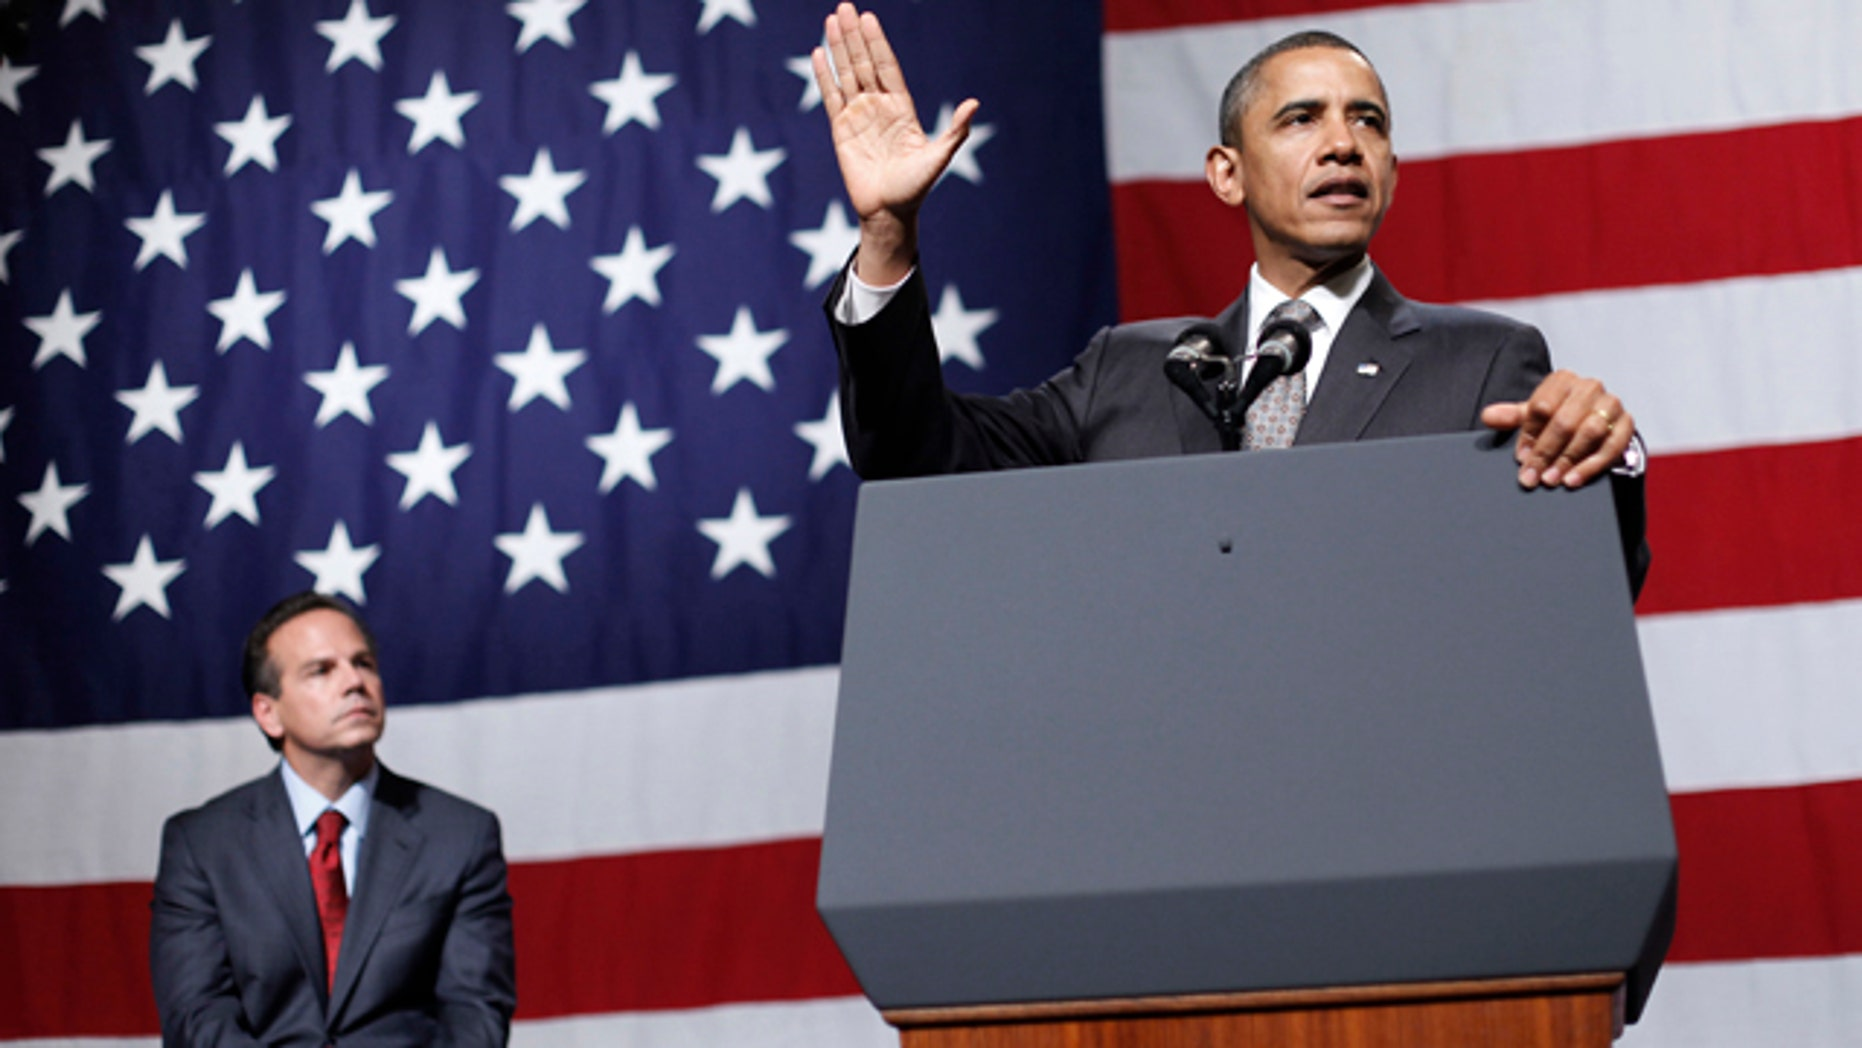 Oct. 25: President Barack Obama delivers remarks at the DCCC reception at the Rhode Island Convention Center in  Providence, R.I. Sitting on stage behind Obama is Providence Mayor and Democratic Congressional candidate David Cicilline.